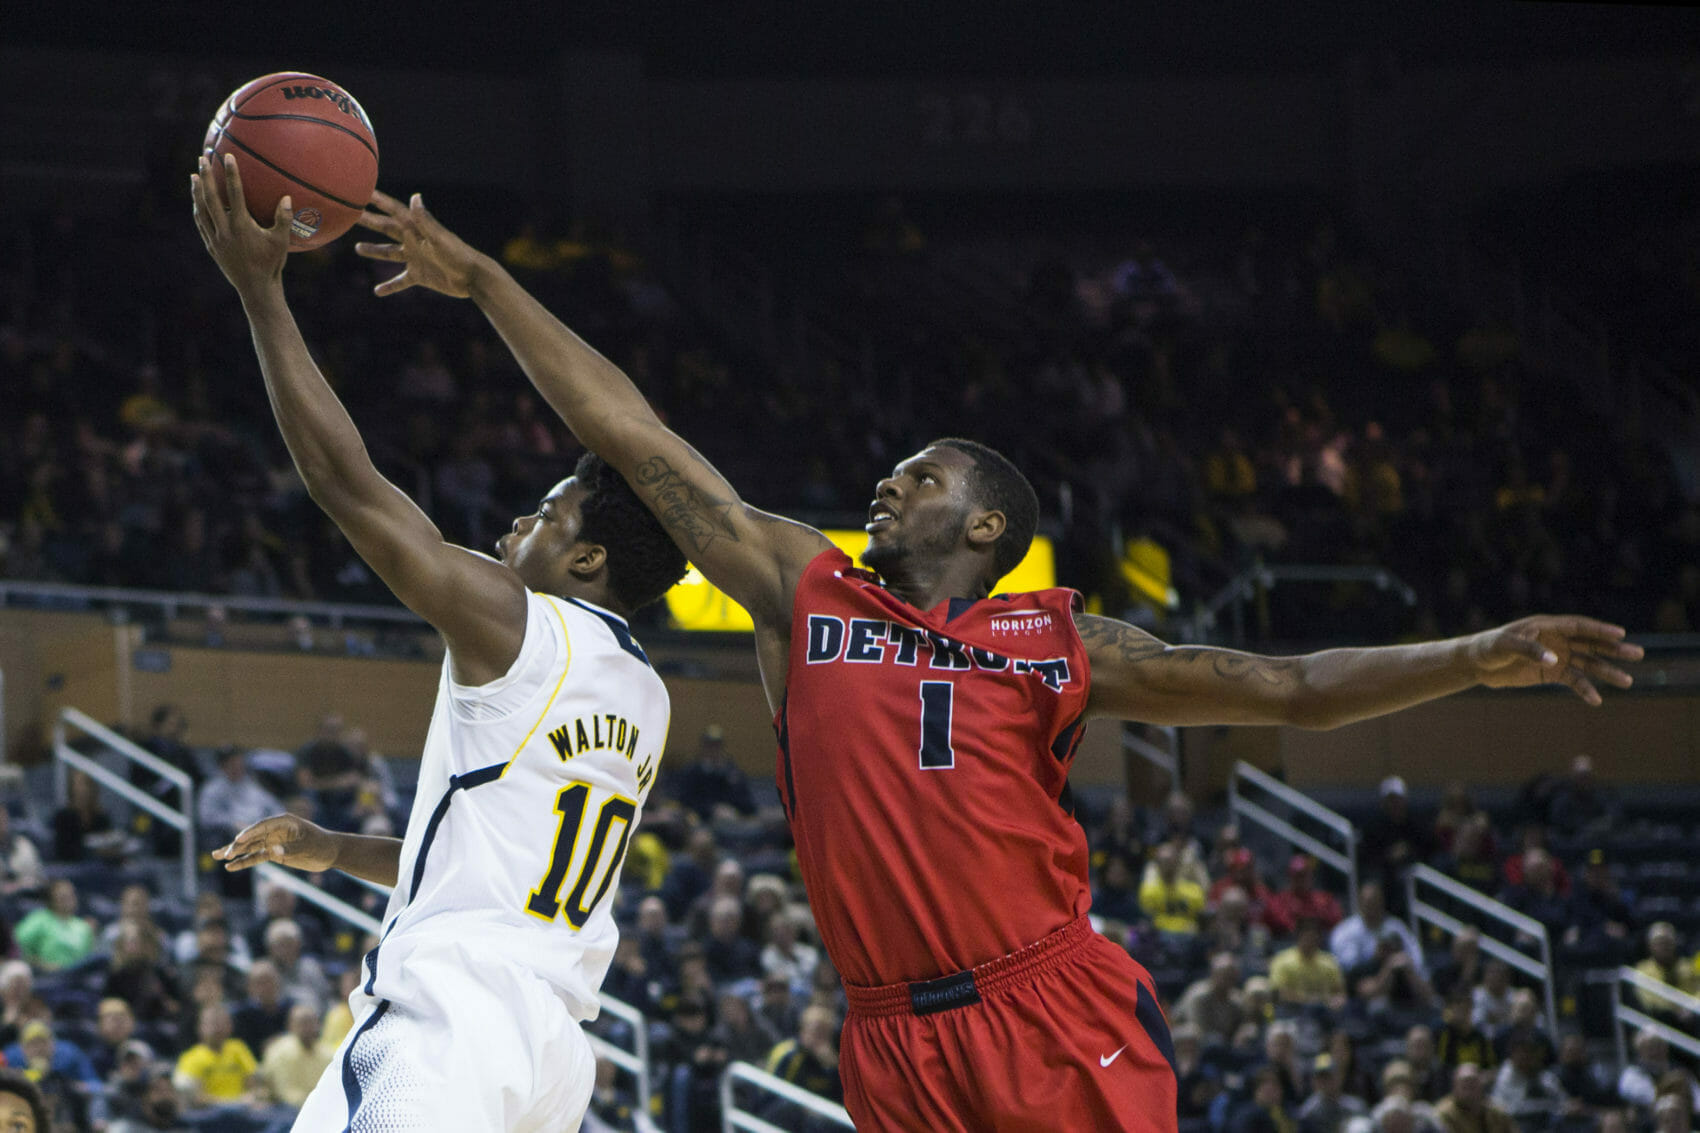 Michigan 71, Detroit 62 -#5